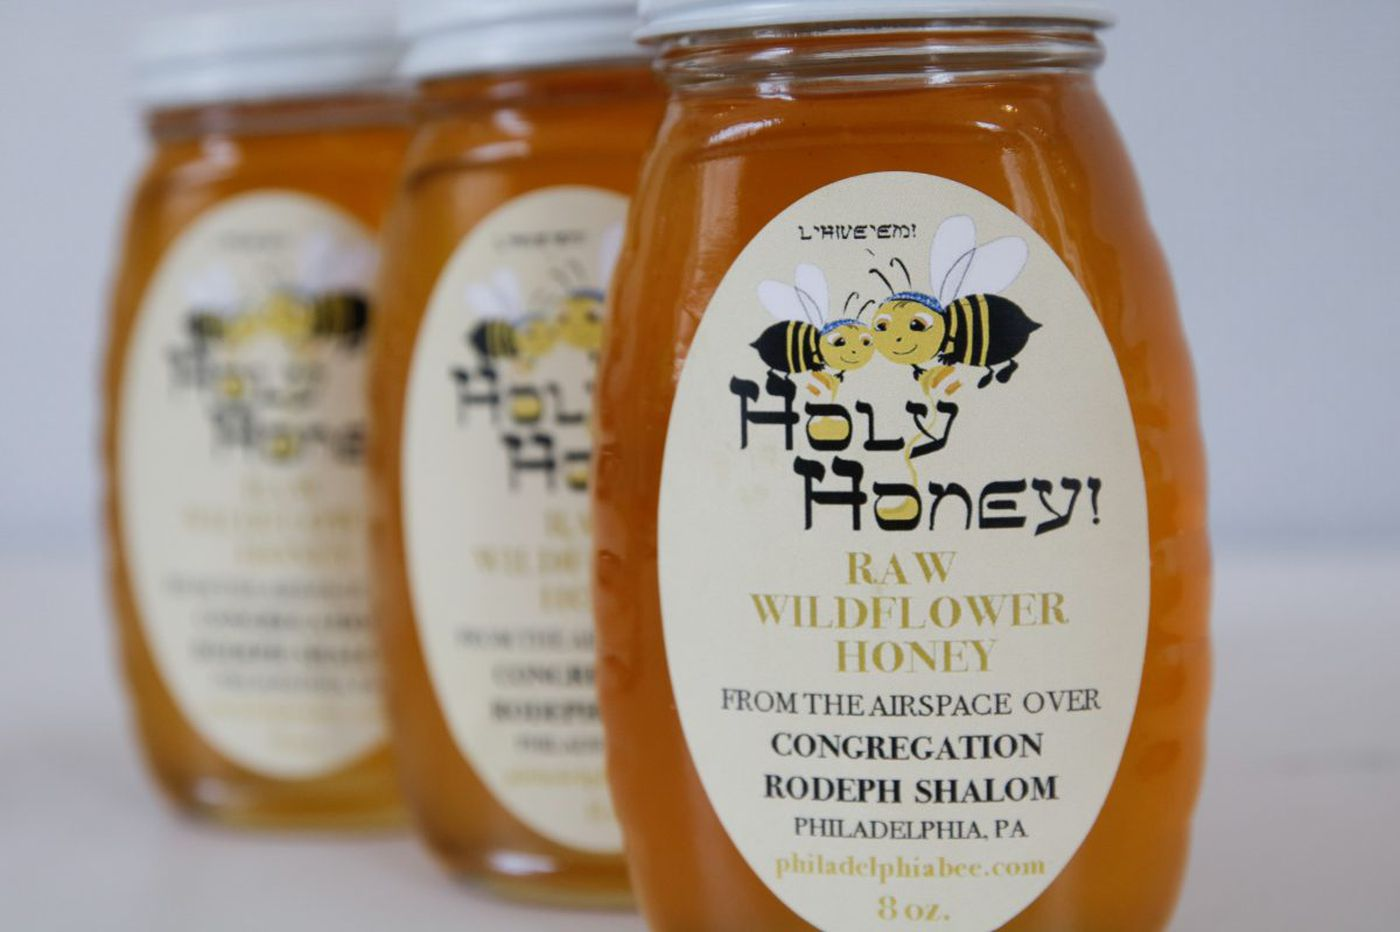 Holy local honey for the High Holidays